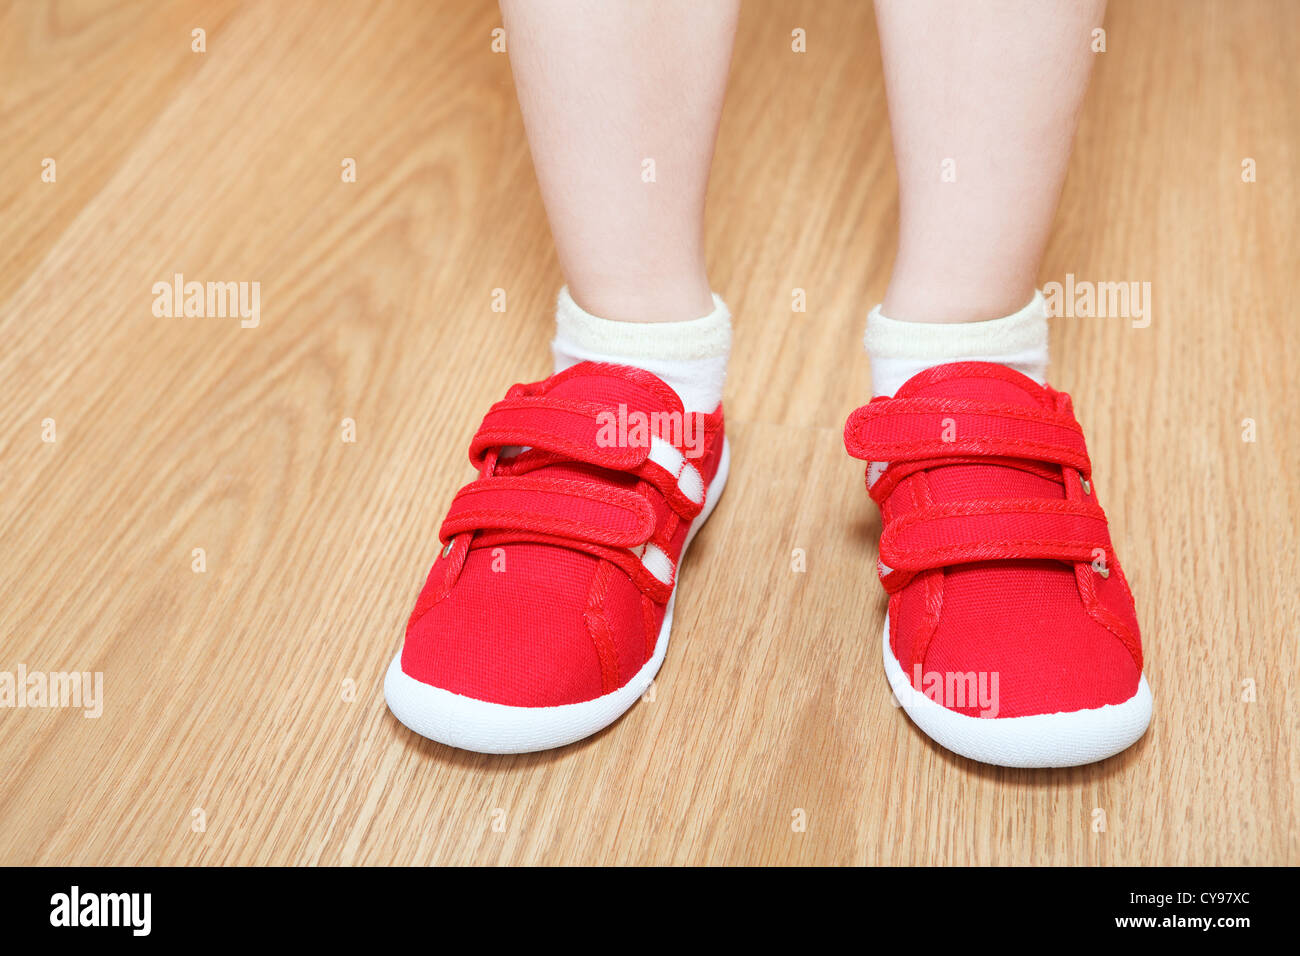 Shoes For Women Standing On Your Feet